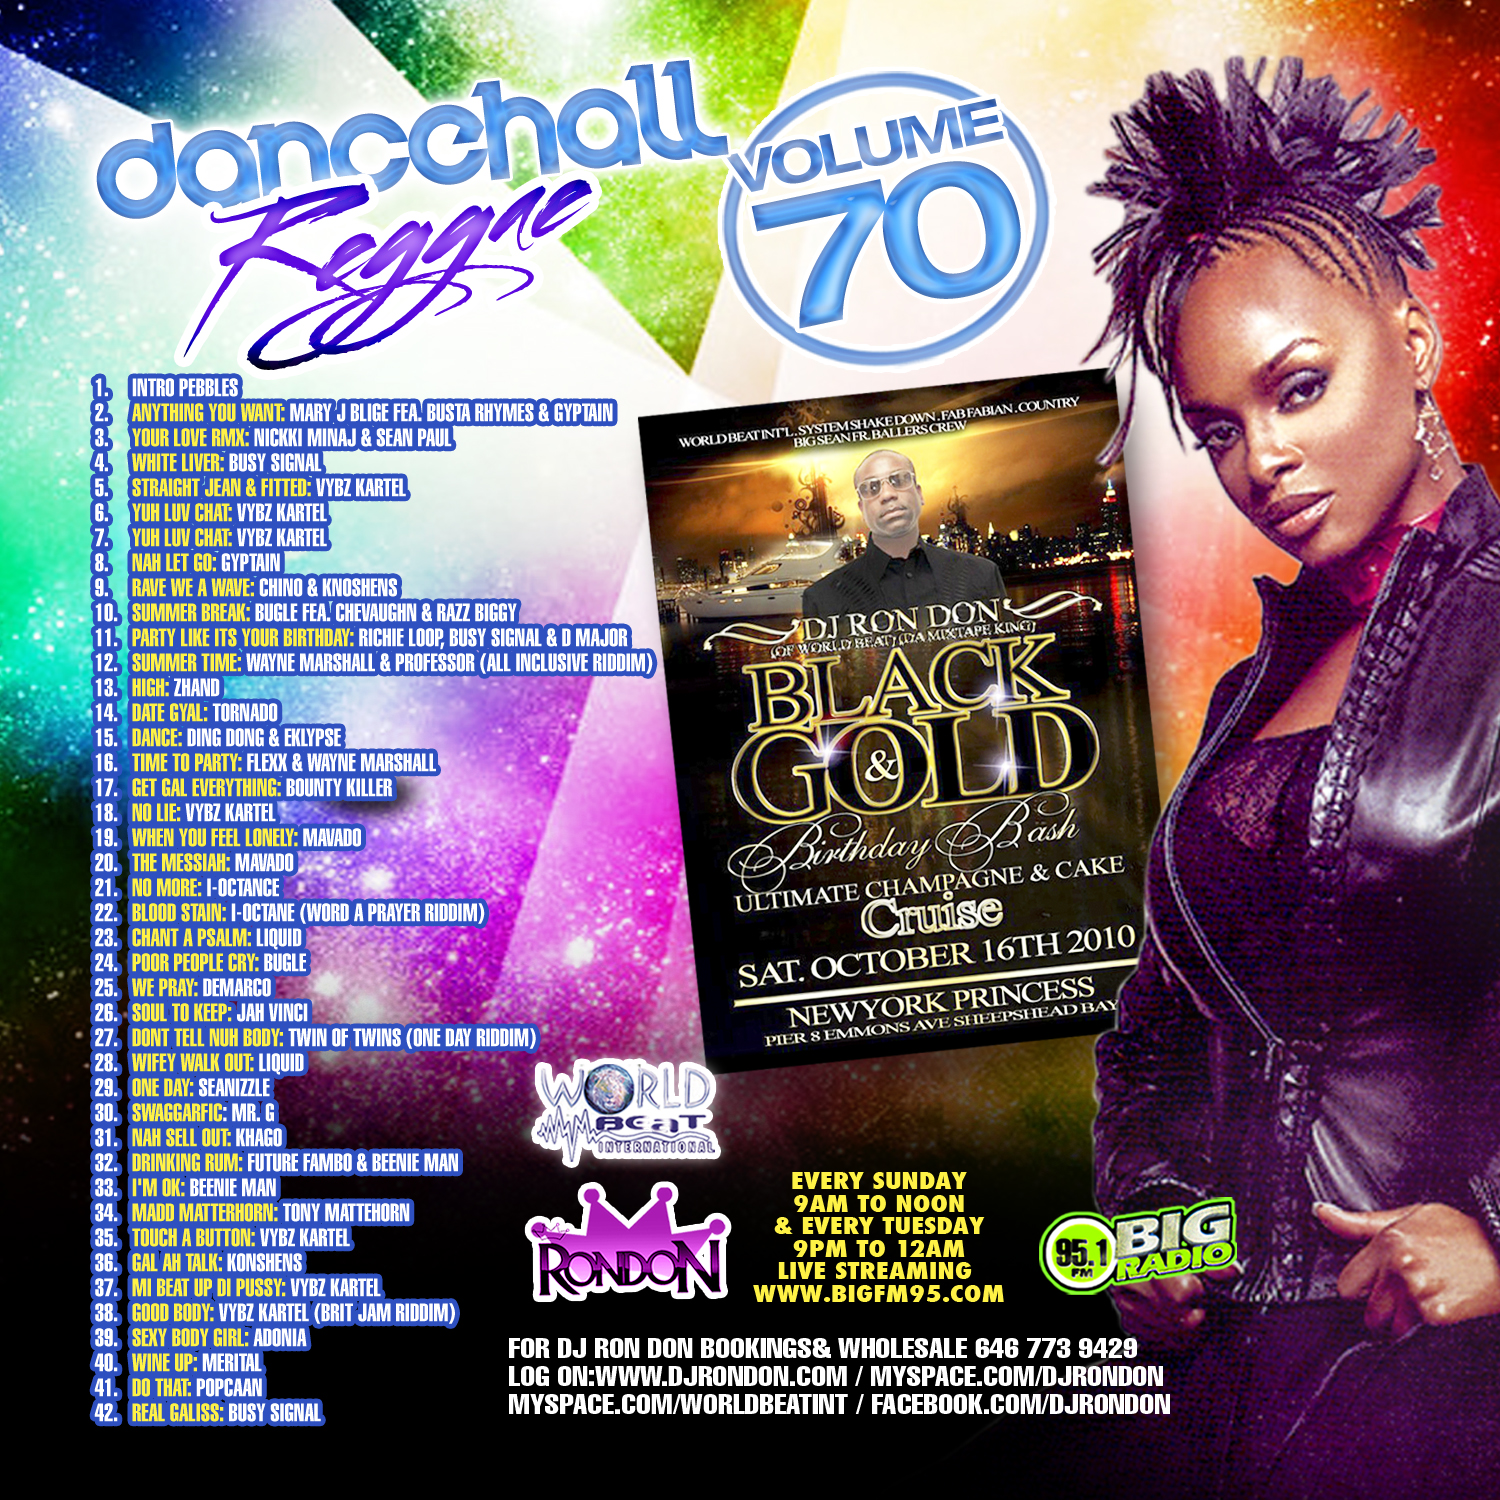 DANCEHALL REGGAE VOL. 70 (DWLN ONLY)